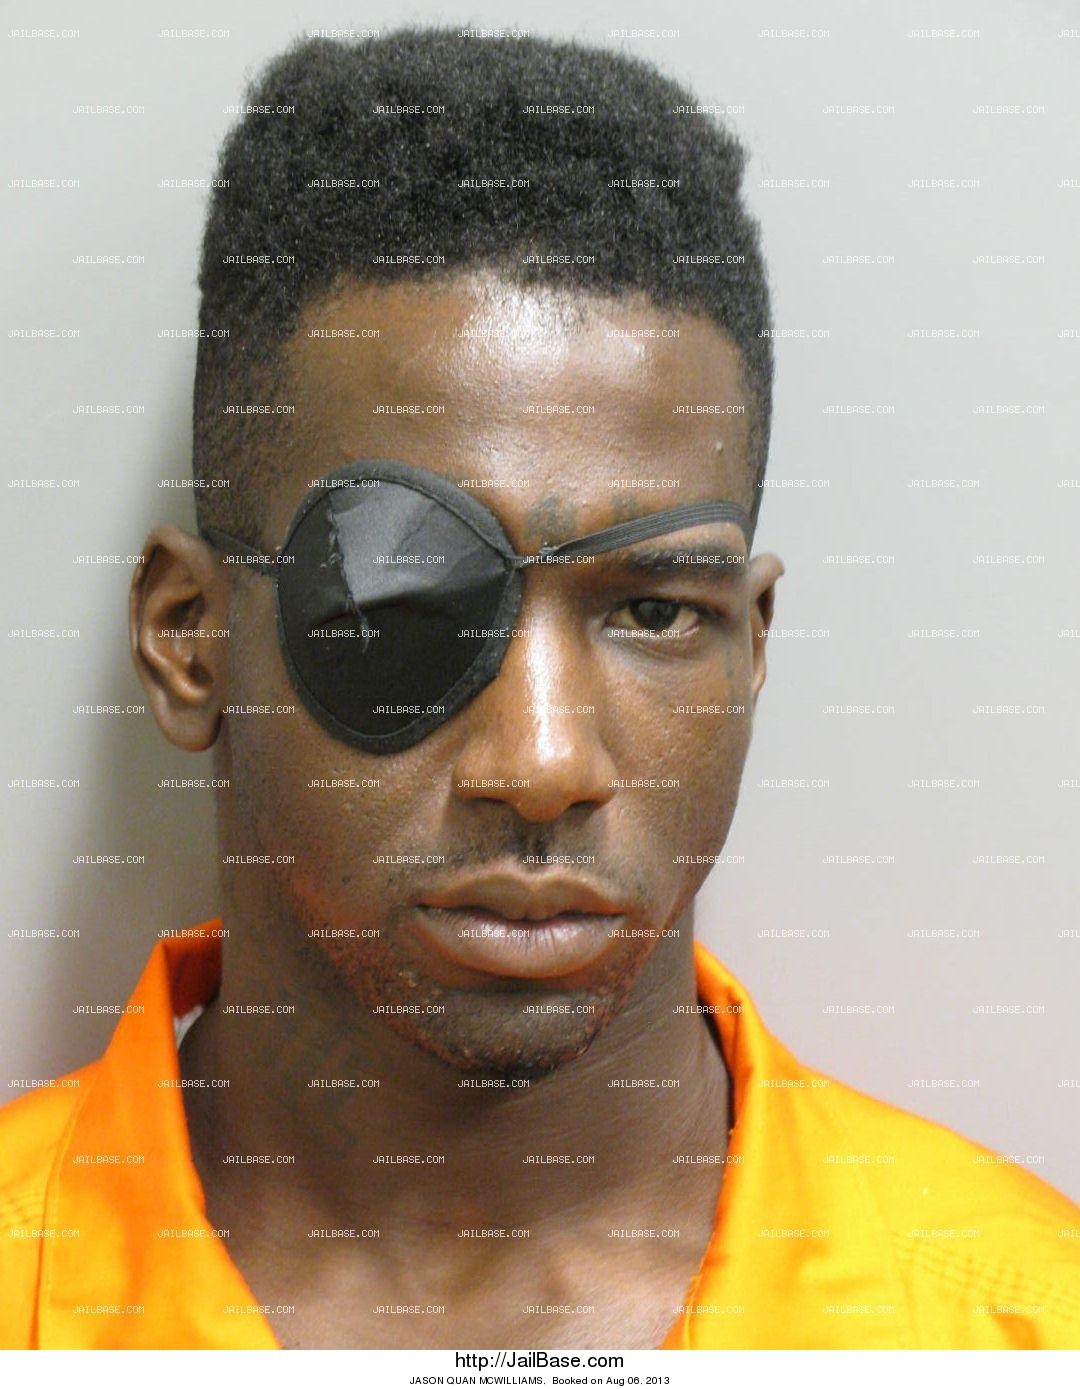 jason quan mcwilliams mugshot picture